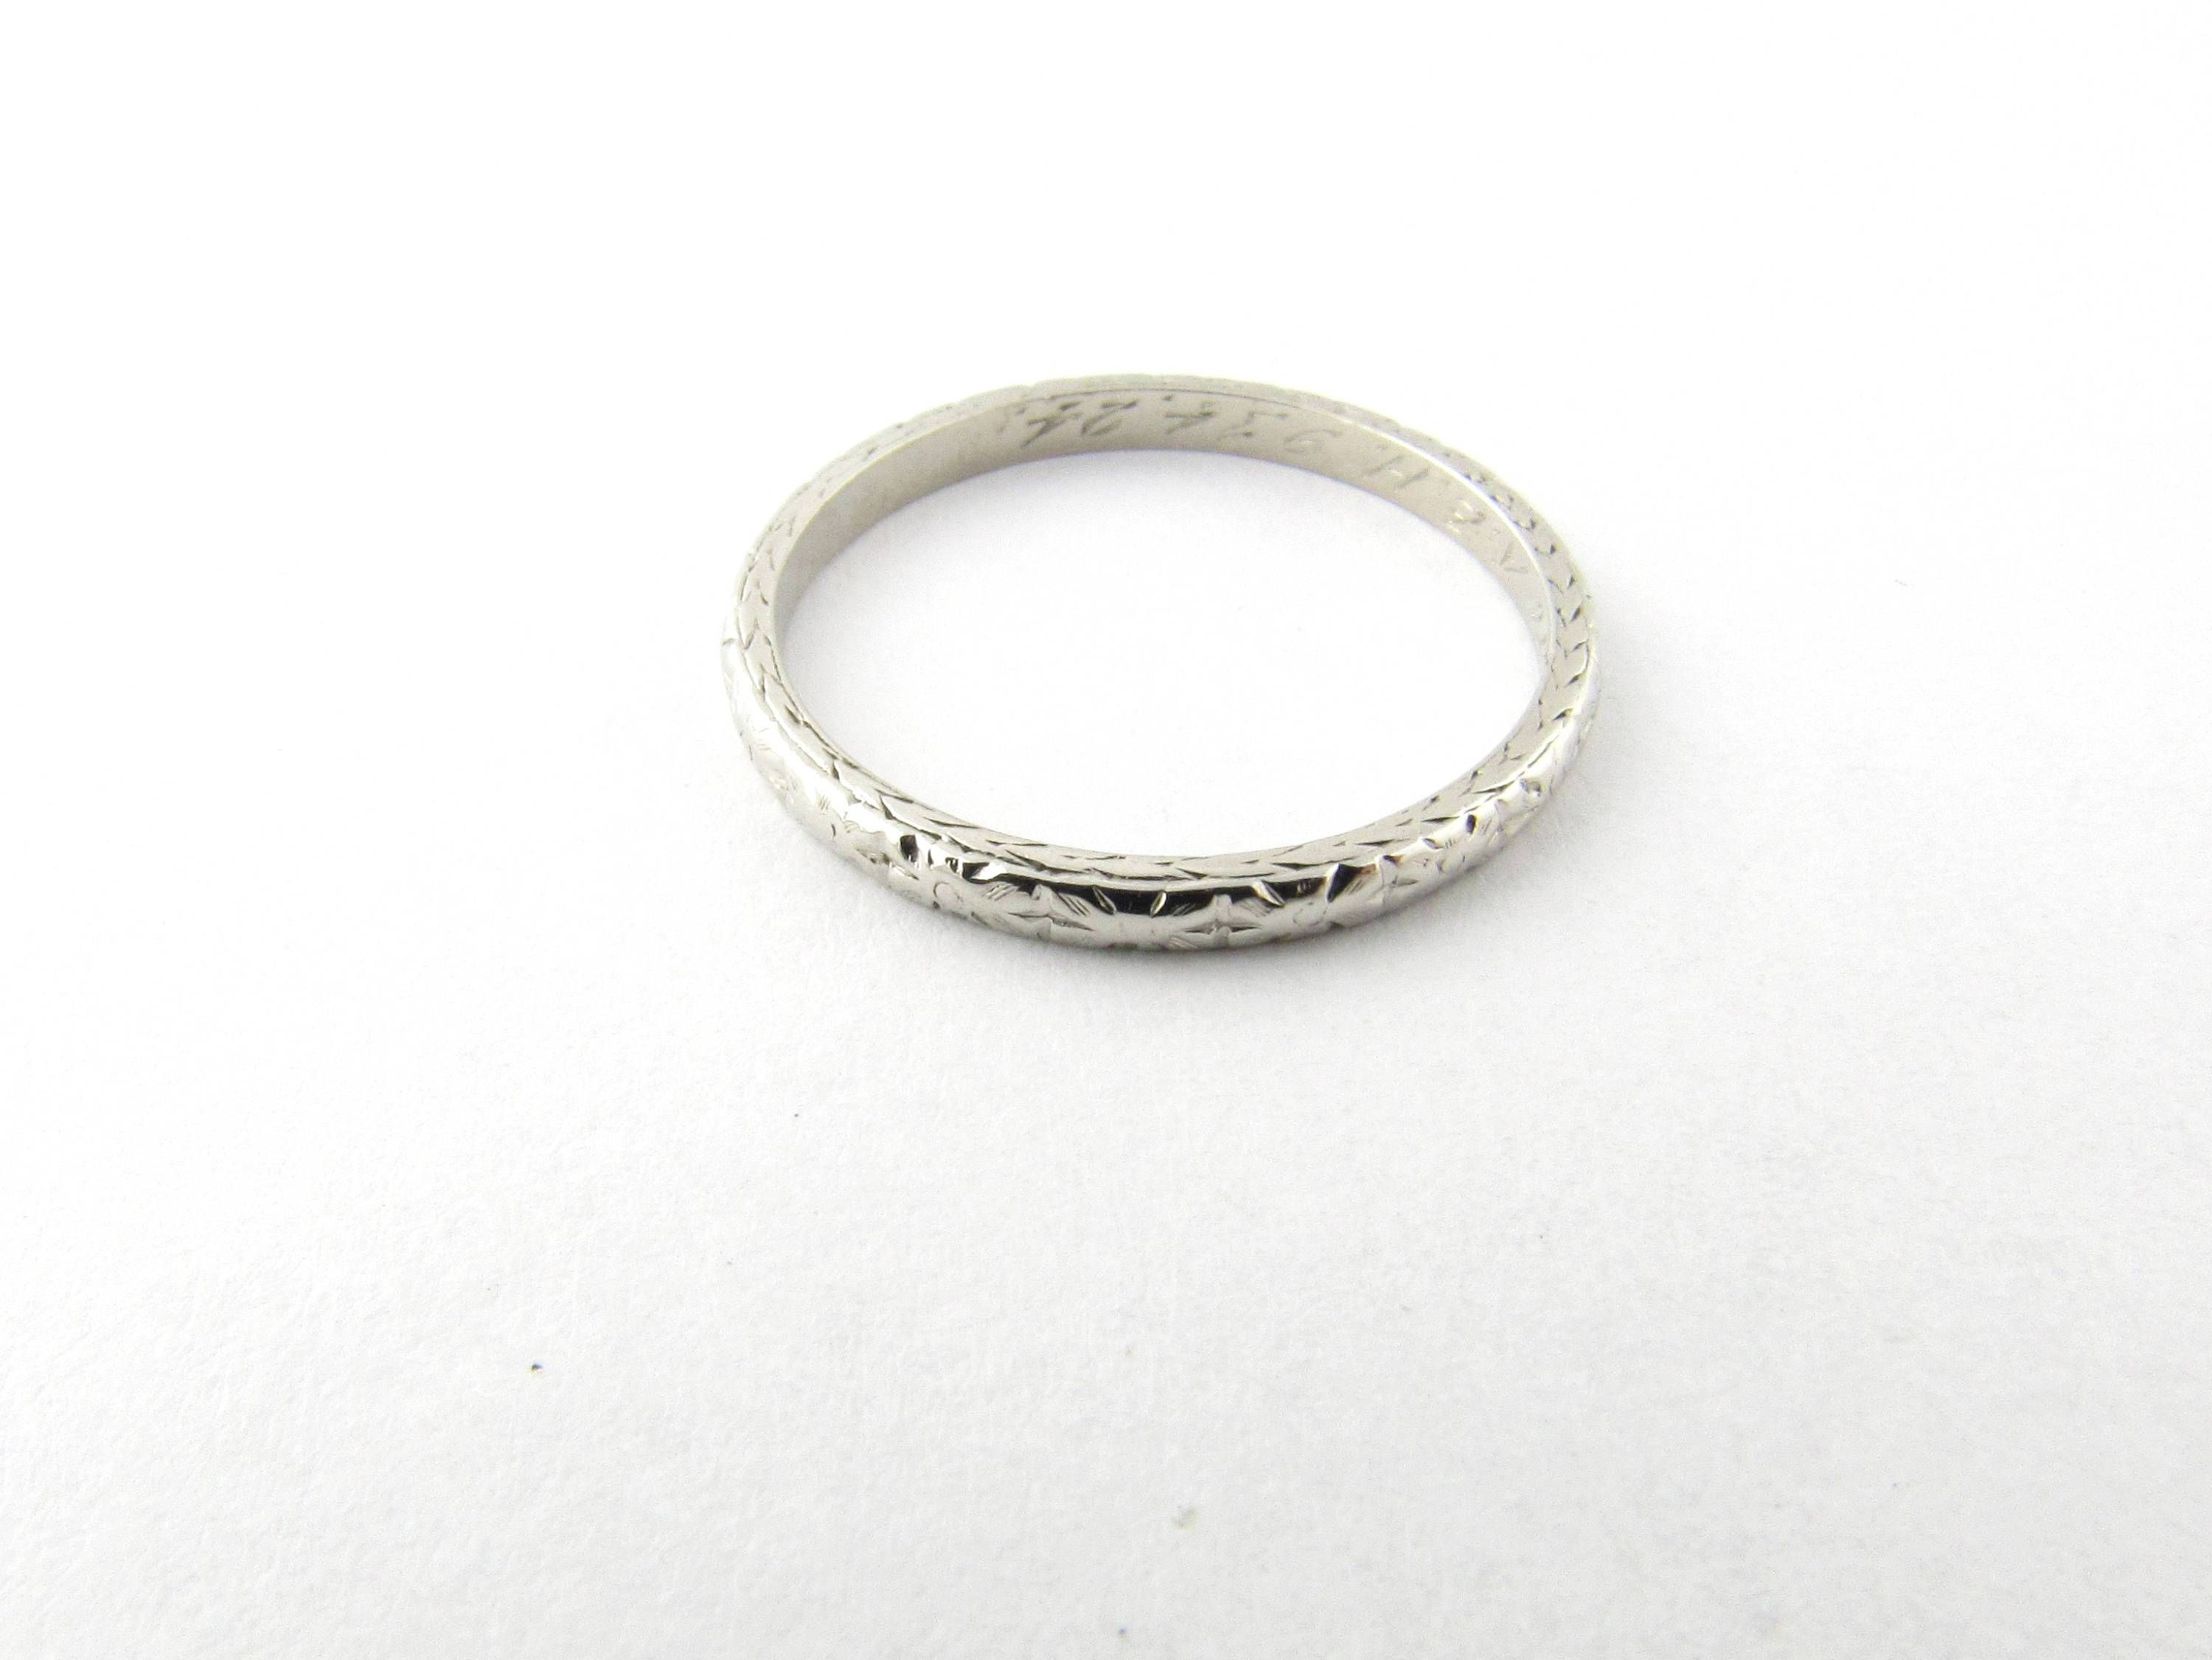 Gorgeous new piece: Vintage Platinum ... Check it out here! http://gold-and-silver-brokers.myshopify.com/products/vintage-platinum-wedding-band-size-7-2894?utm_campaign=social_autopilot&utm_source=pin&utm_medium=pin